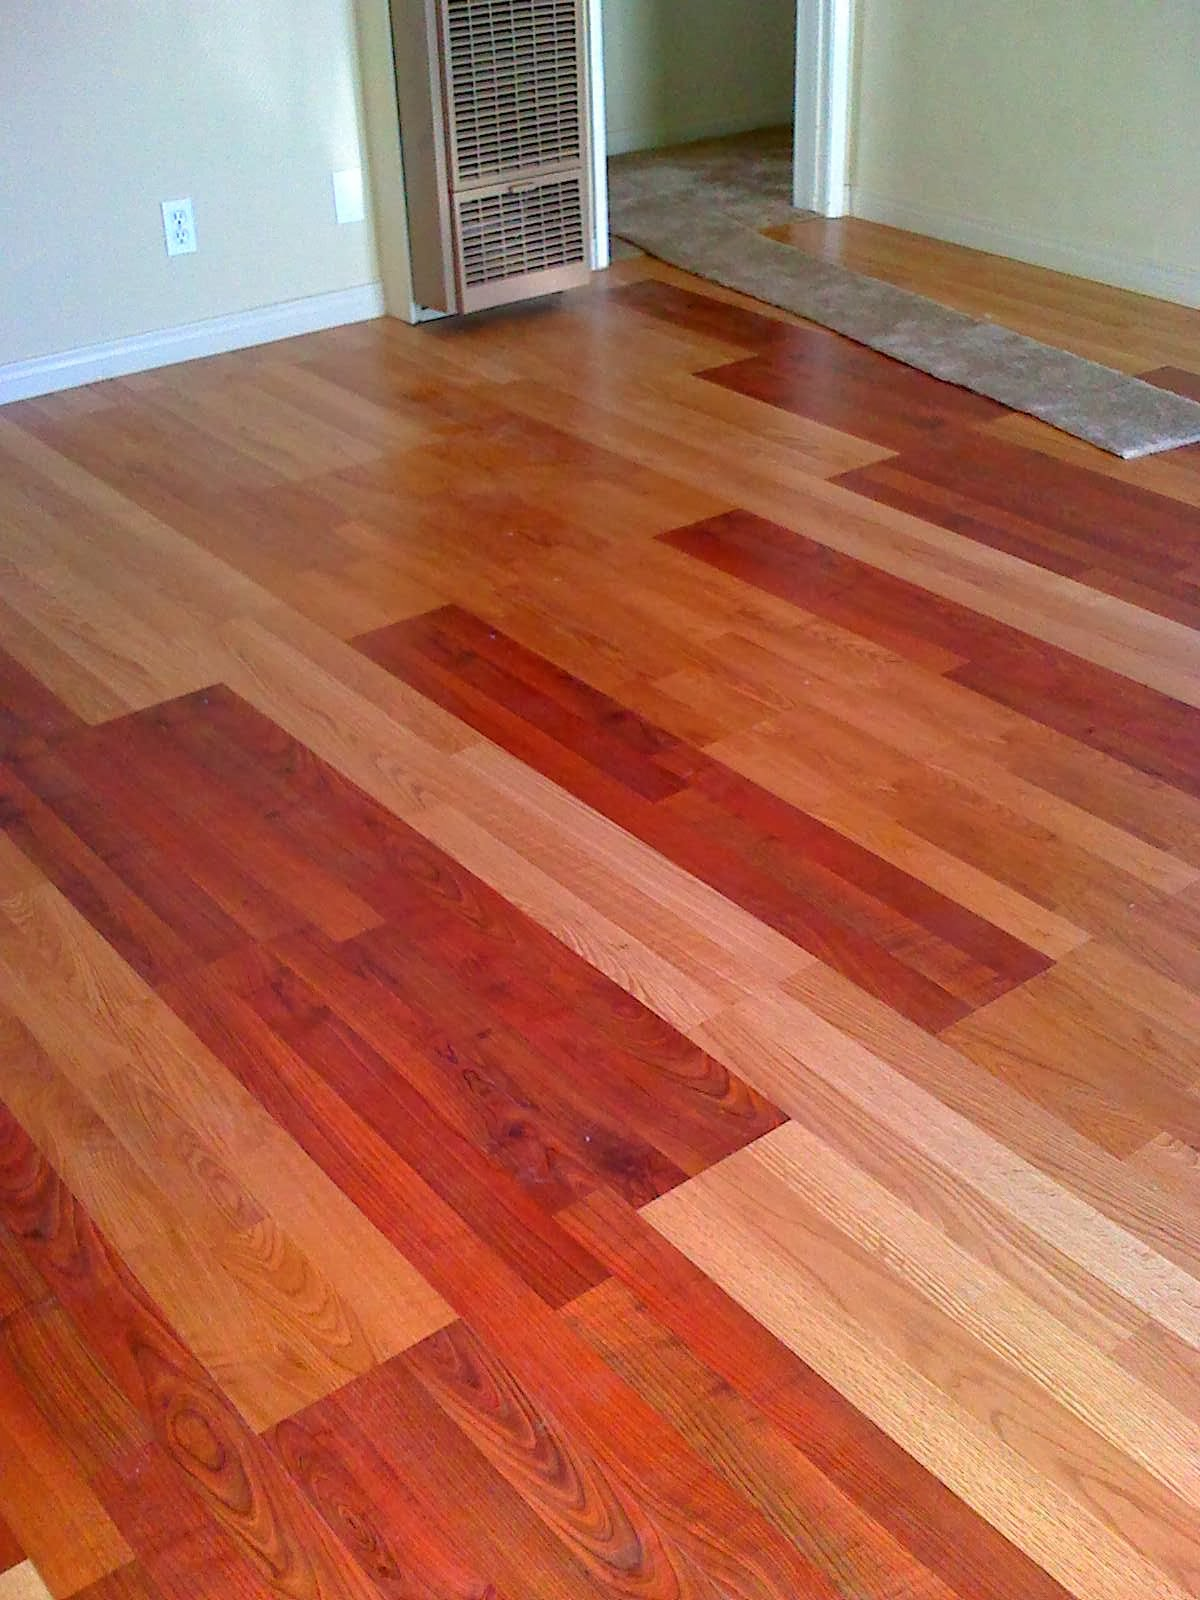 B t carpet and linoleum 39 s flooring blog - Laminate versus hardwood flooring ...